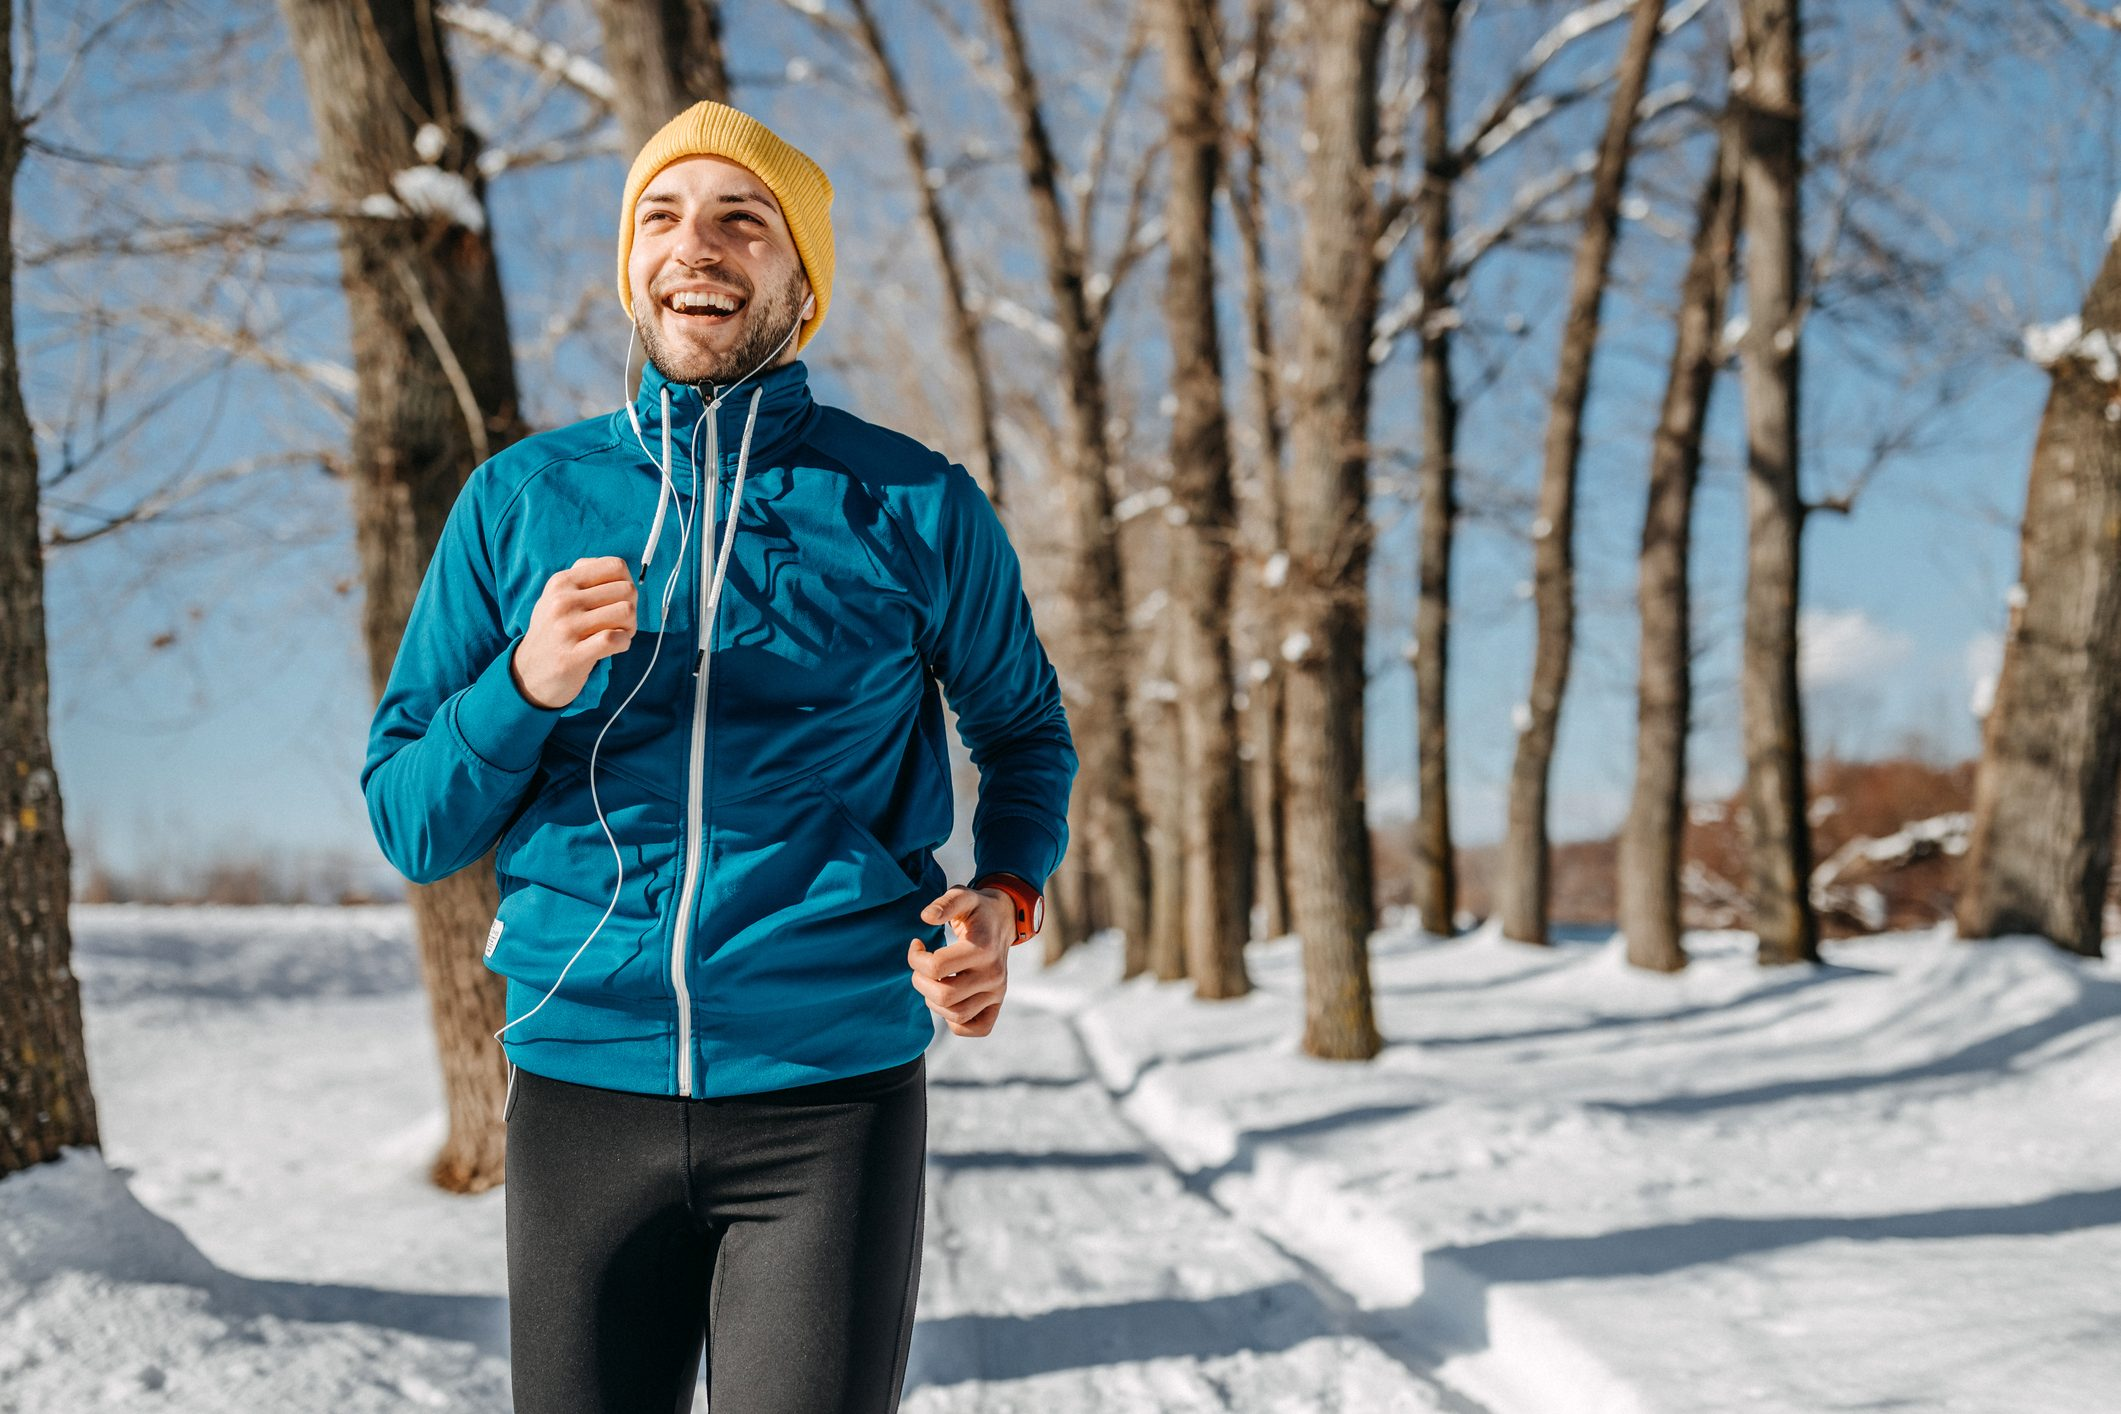 Winter Fitness: How To Stay Active This Winter